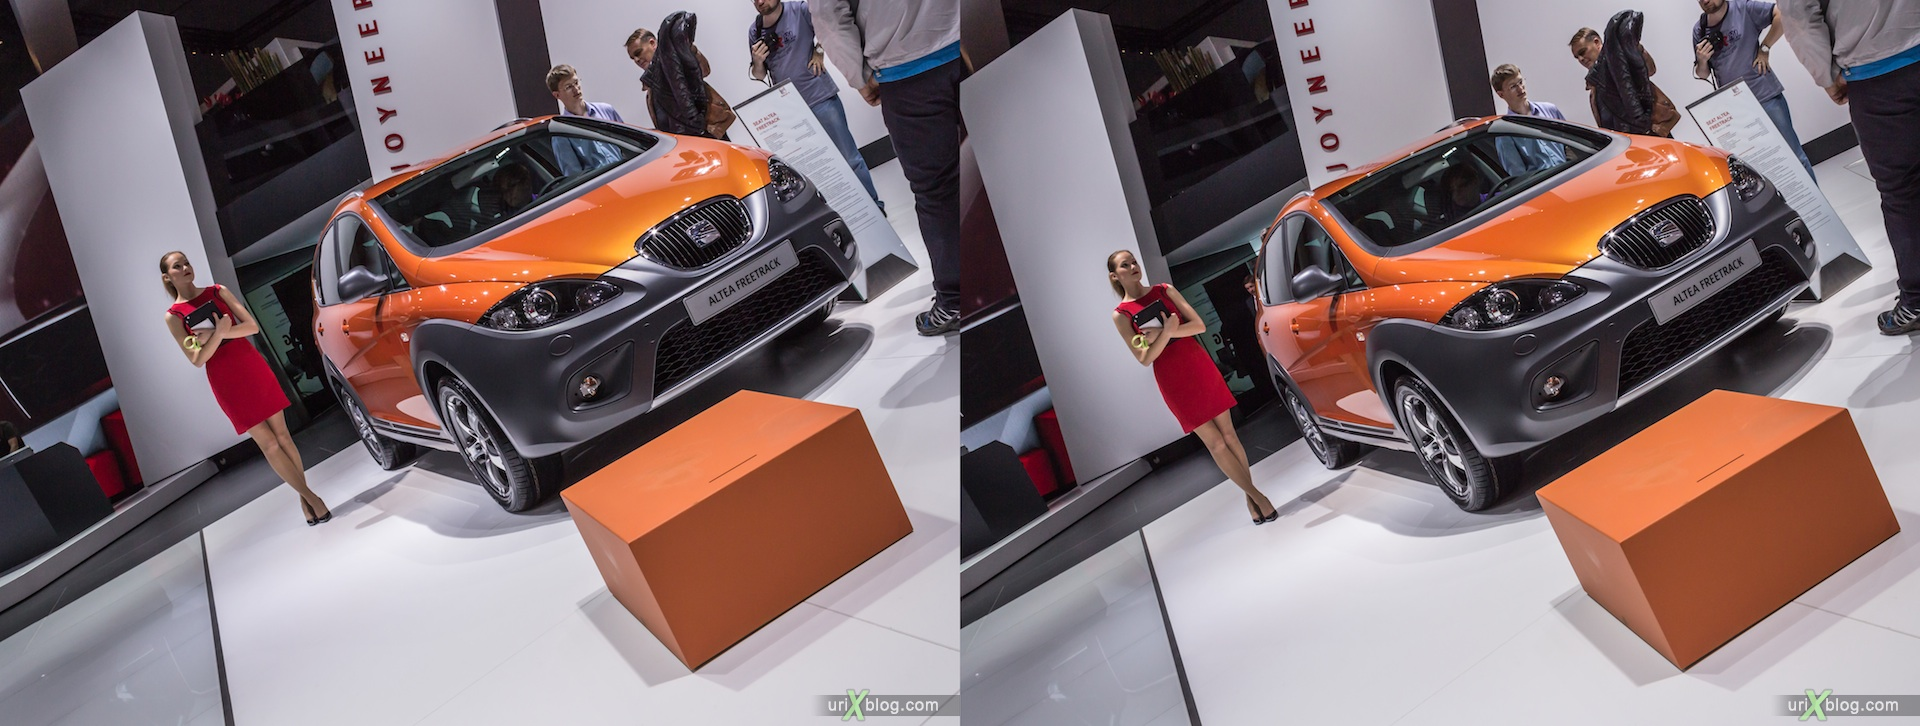 2012, Seat Altea Freetrack, girl, model, Moscow International Automobile Salon, auto show, 3D, stereo pair, cross-eyed, crossview